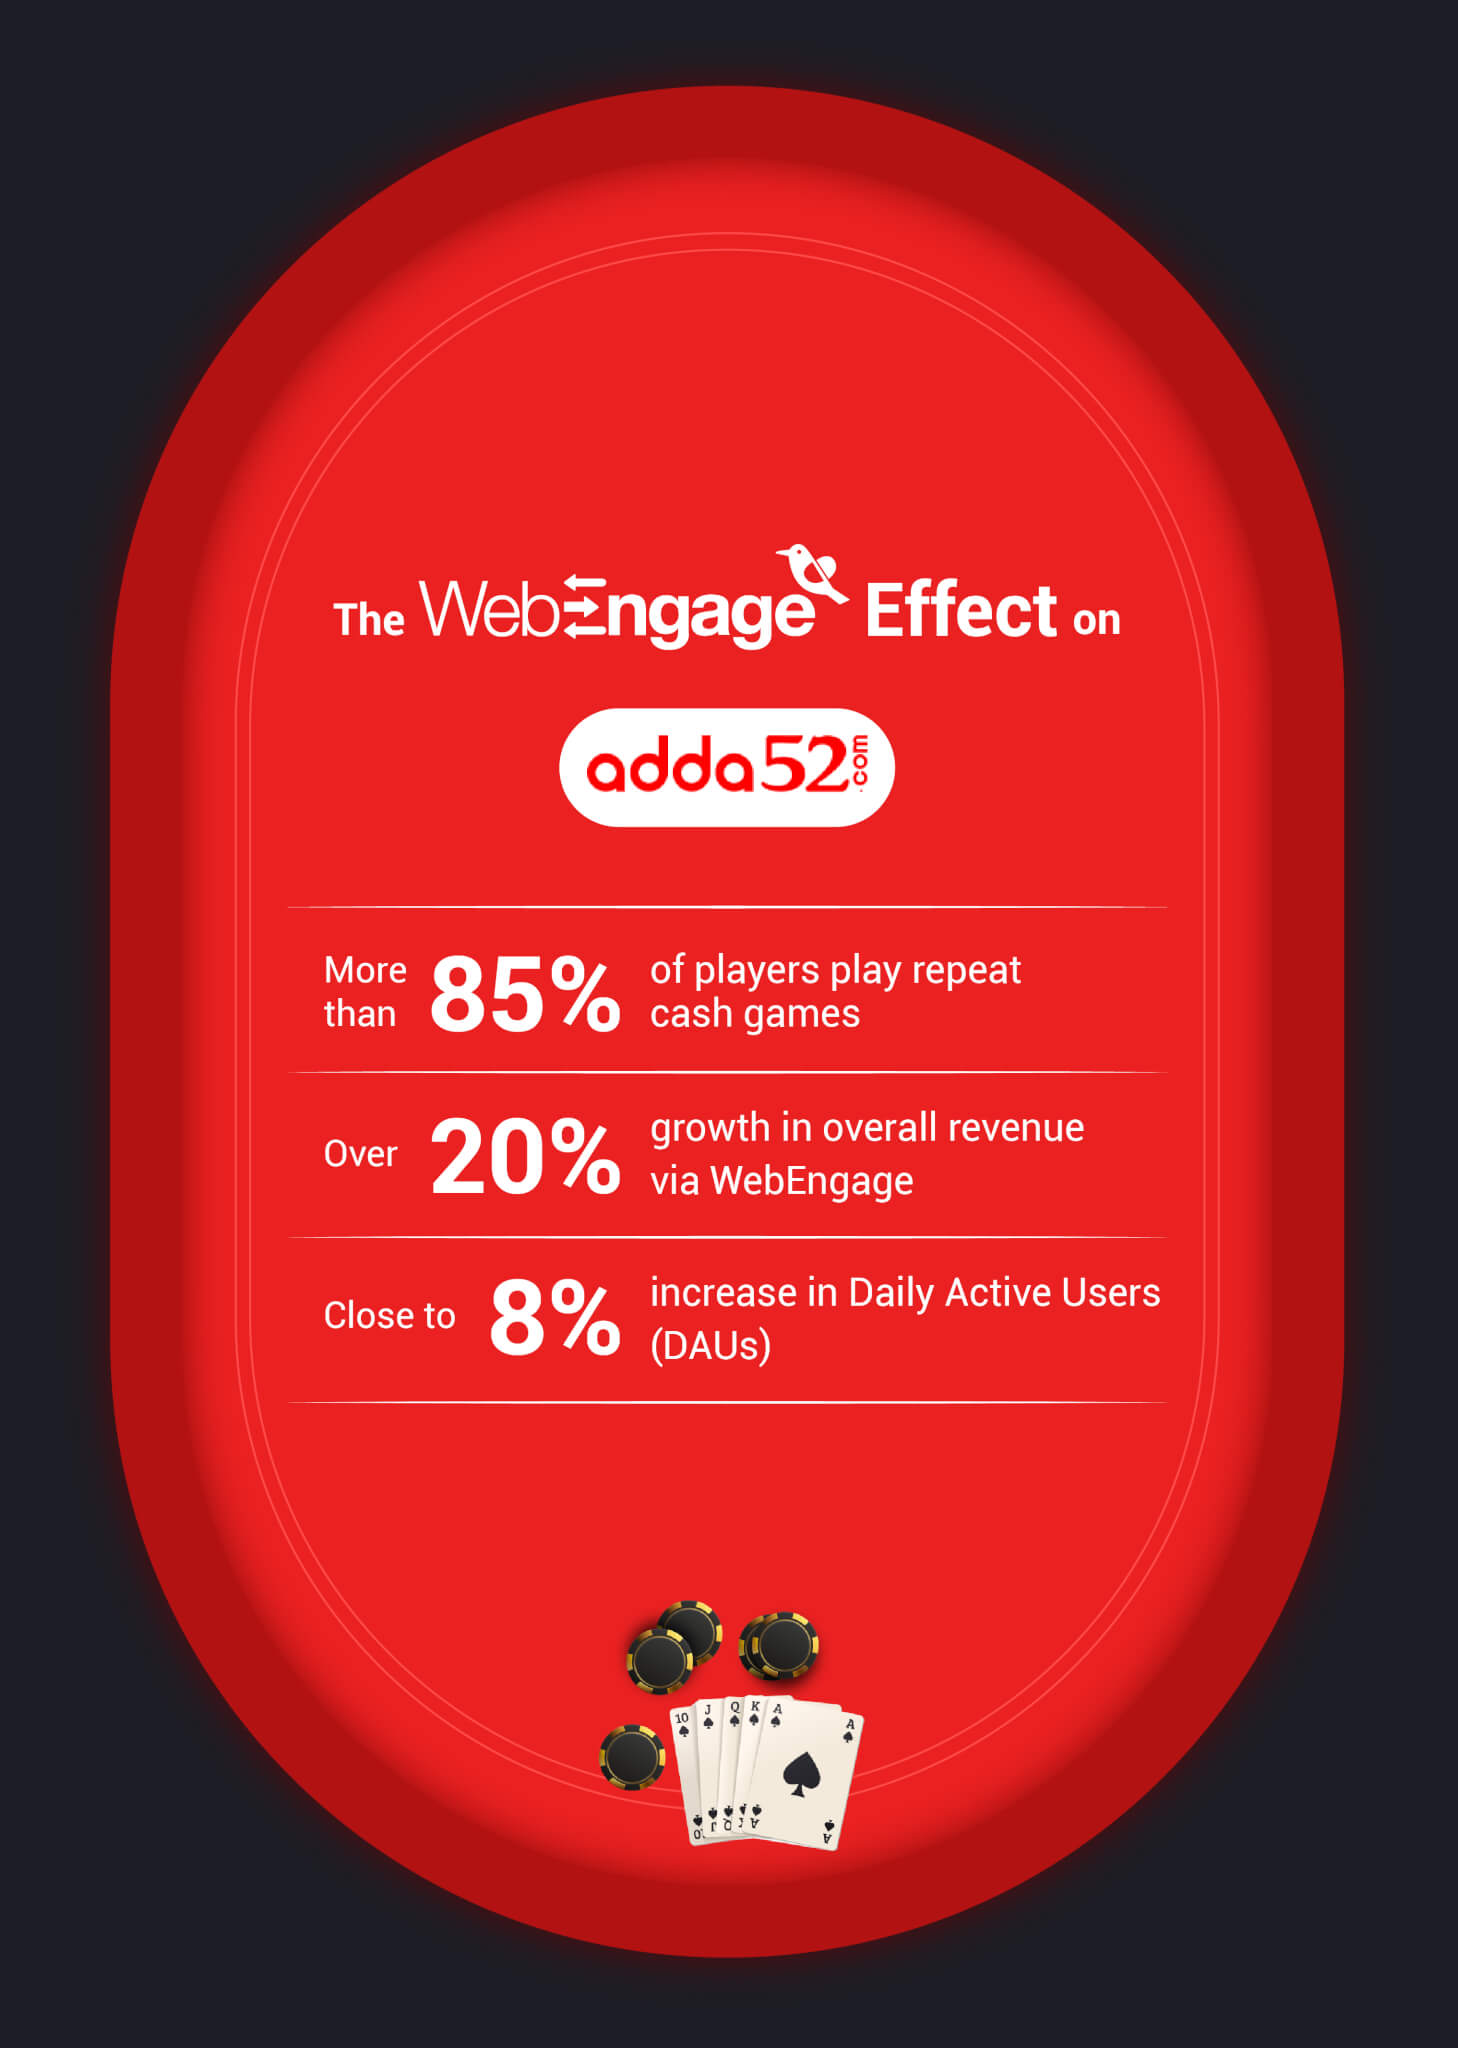 Adda52 witnesses a 20% growth in revenue with WebEngage